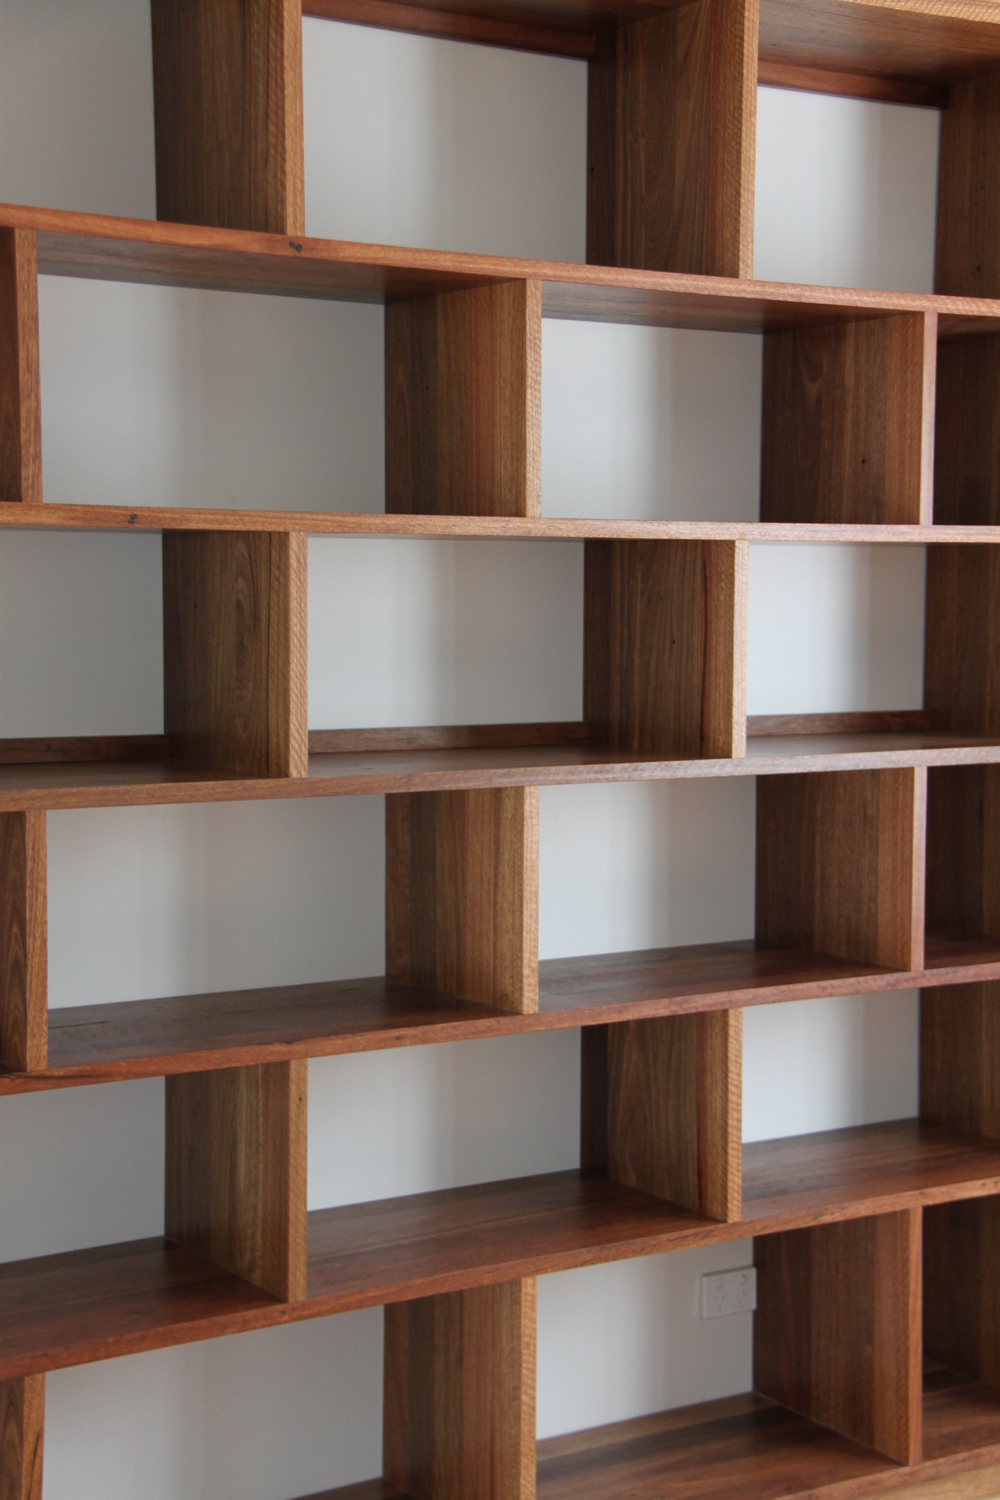 Recycled Spotted Gum book shelving